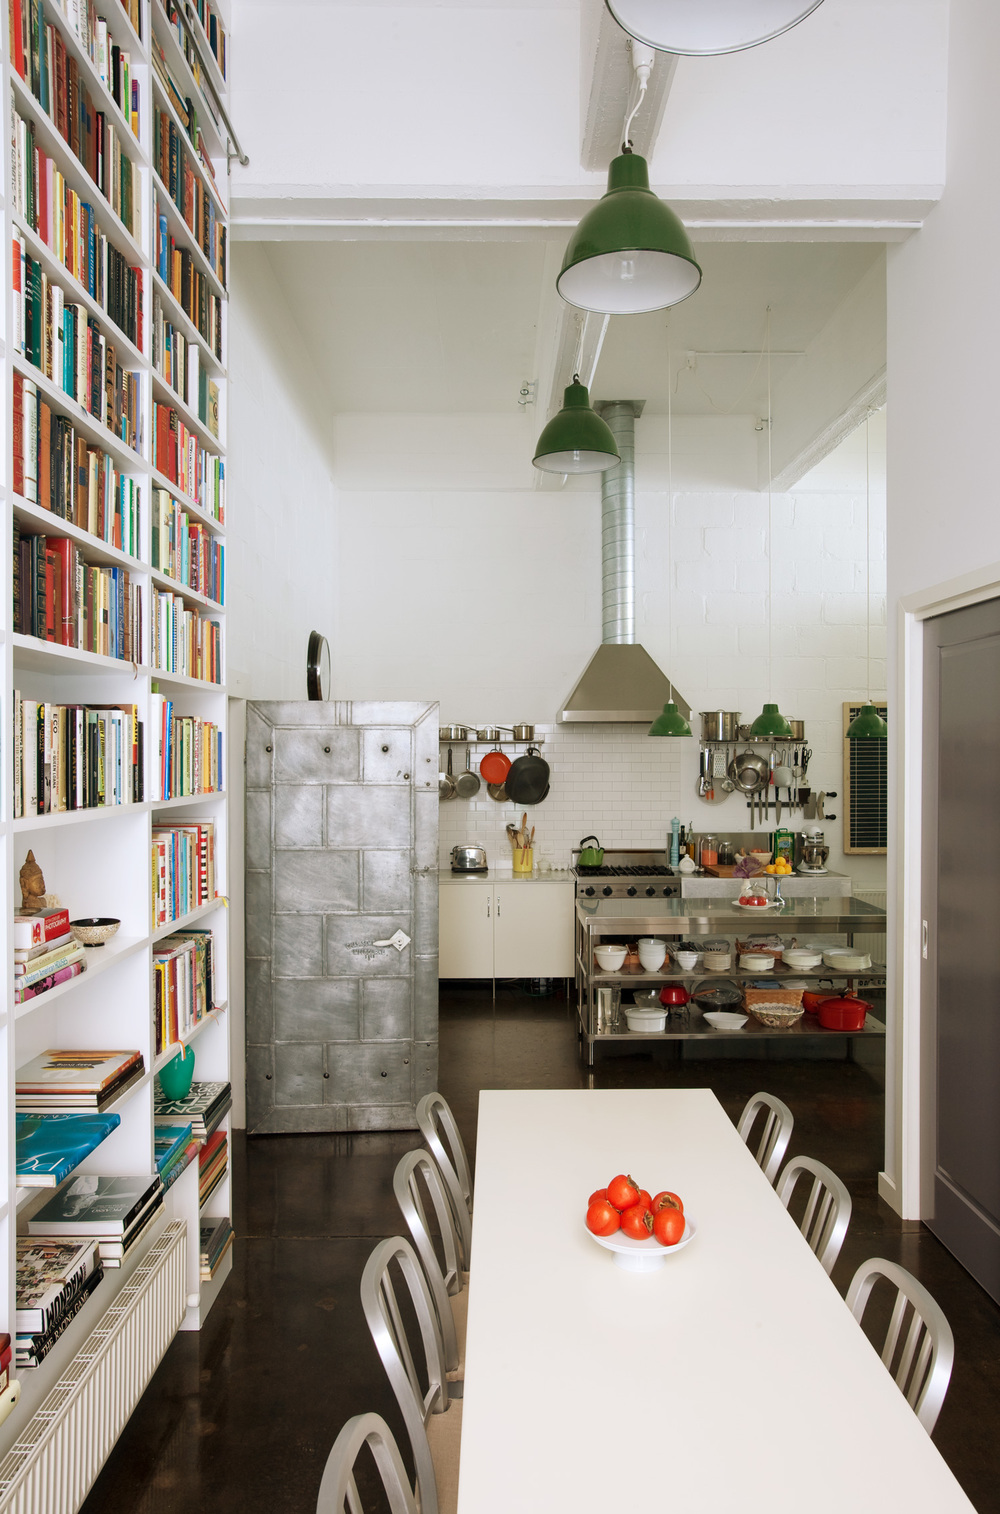 casual-dining-industrial-kitchen-green-overhead-pendants-floor-to-ceiling-bookshelf-diane-bergeron.jpg